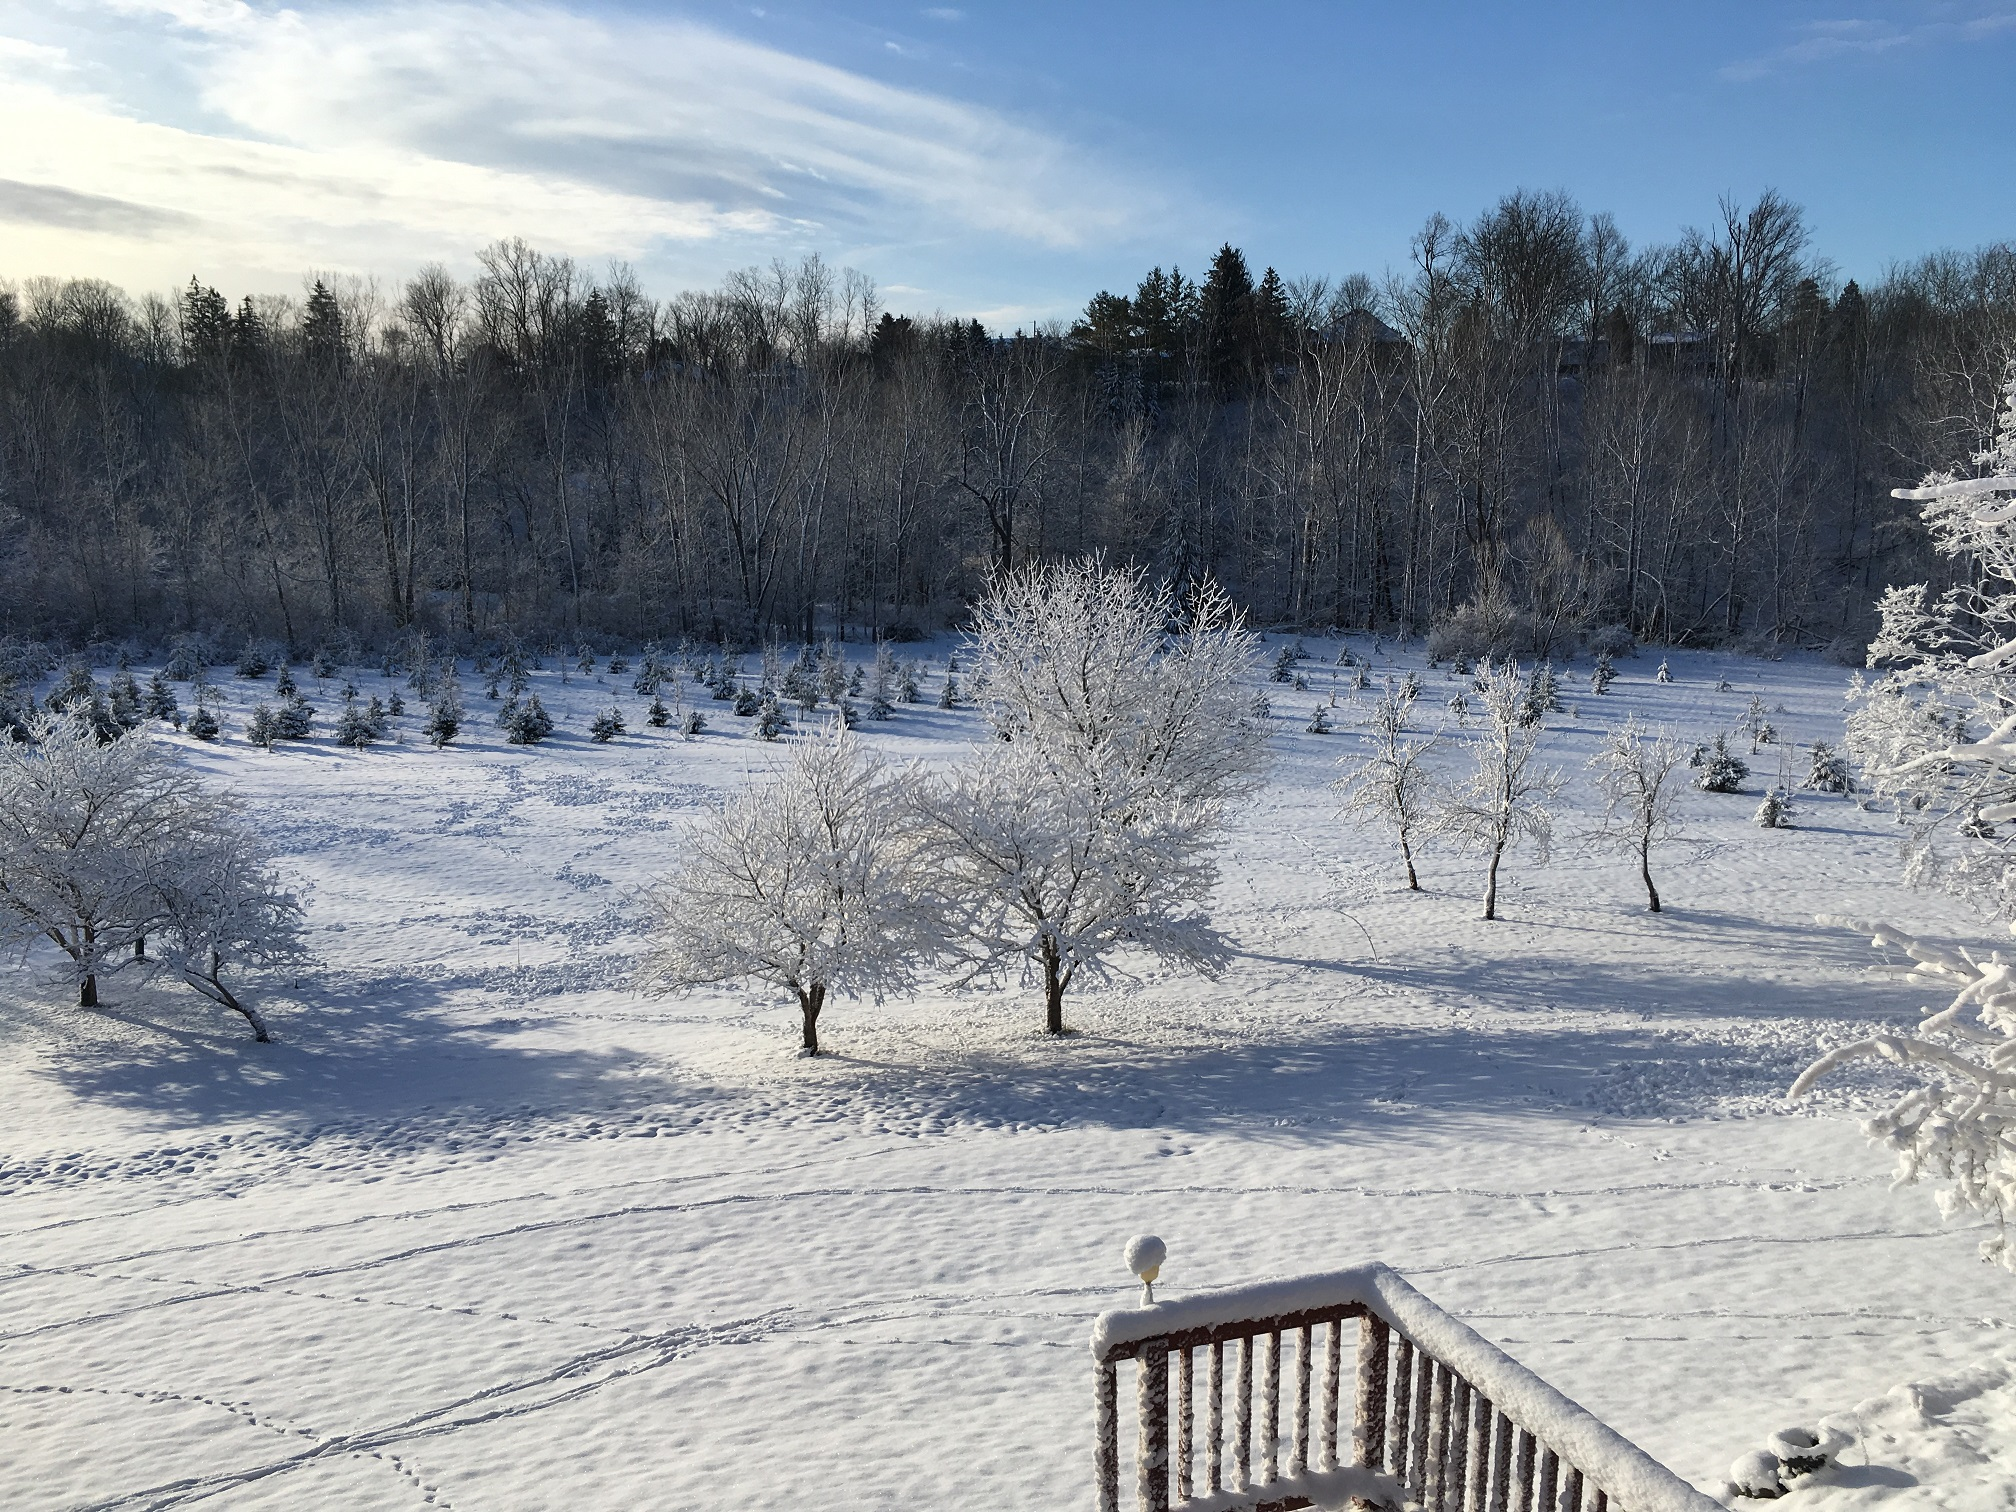 Snow on the meadow and on the trees, St Thomas, Ontario